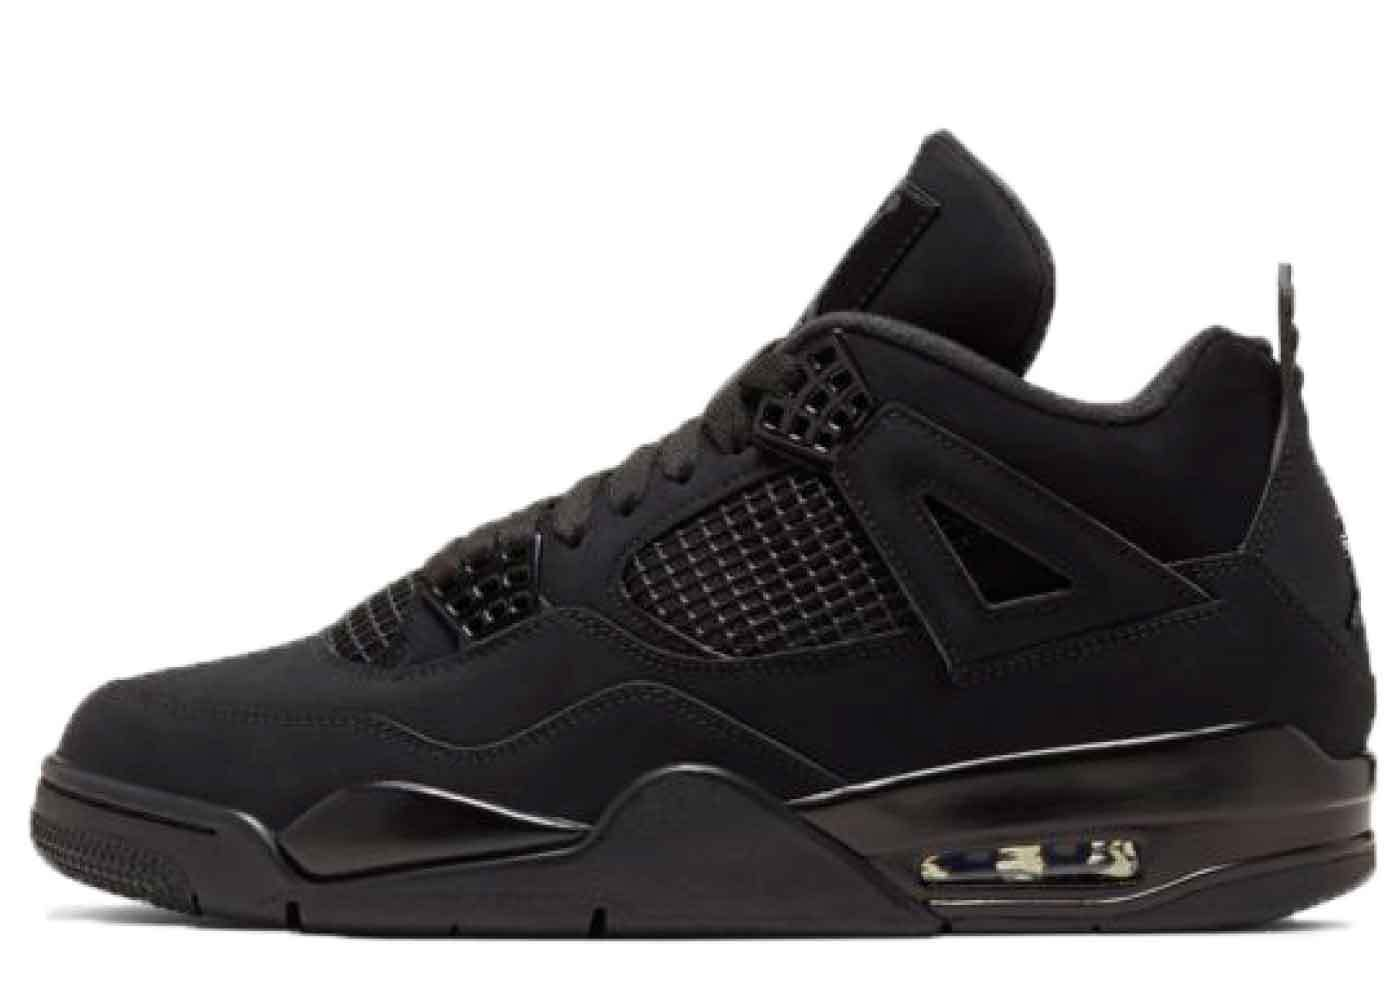 Nike Air Jordan 4 Retro Black Cat (2020)の写真